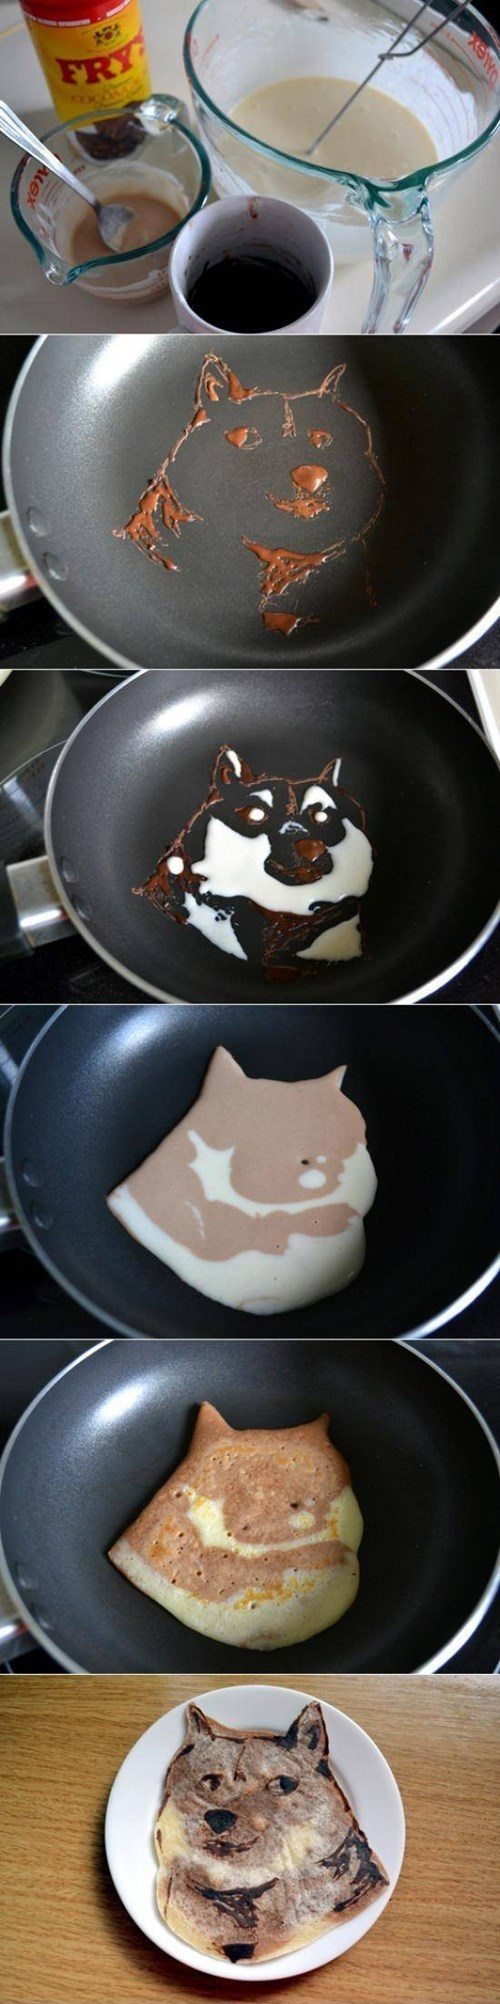 breakfast pancakes doge g rated win - 8224857344